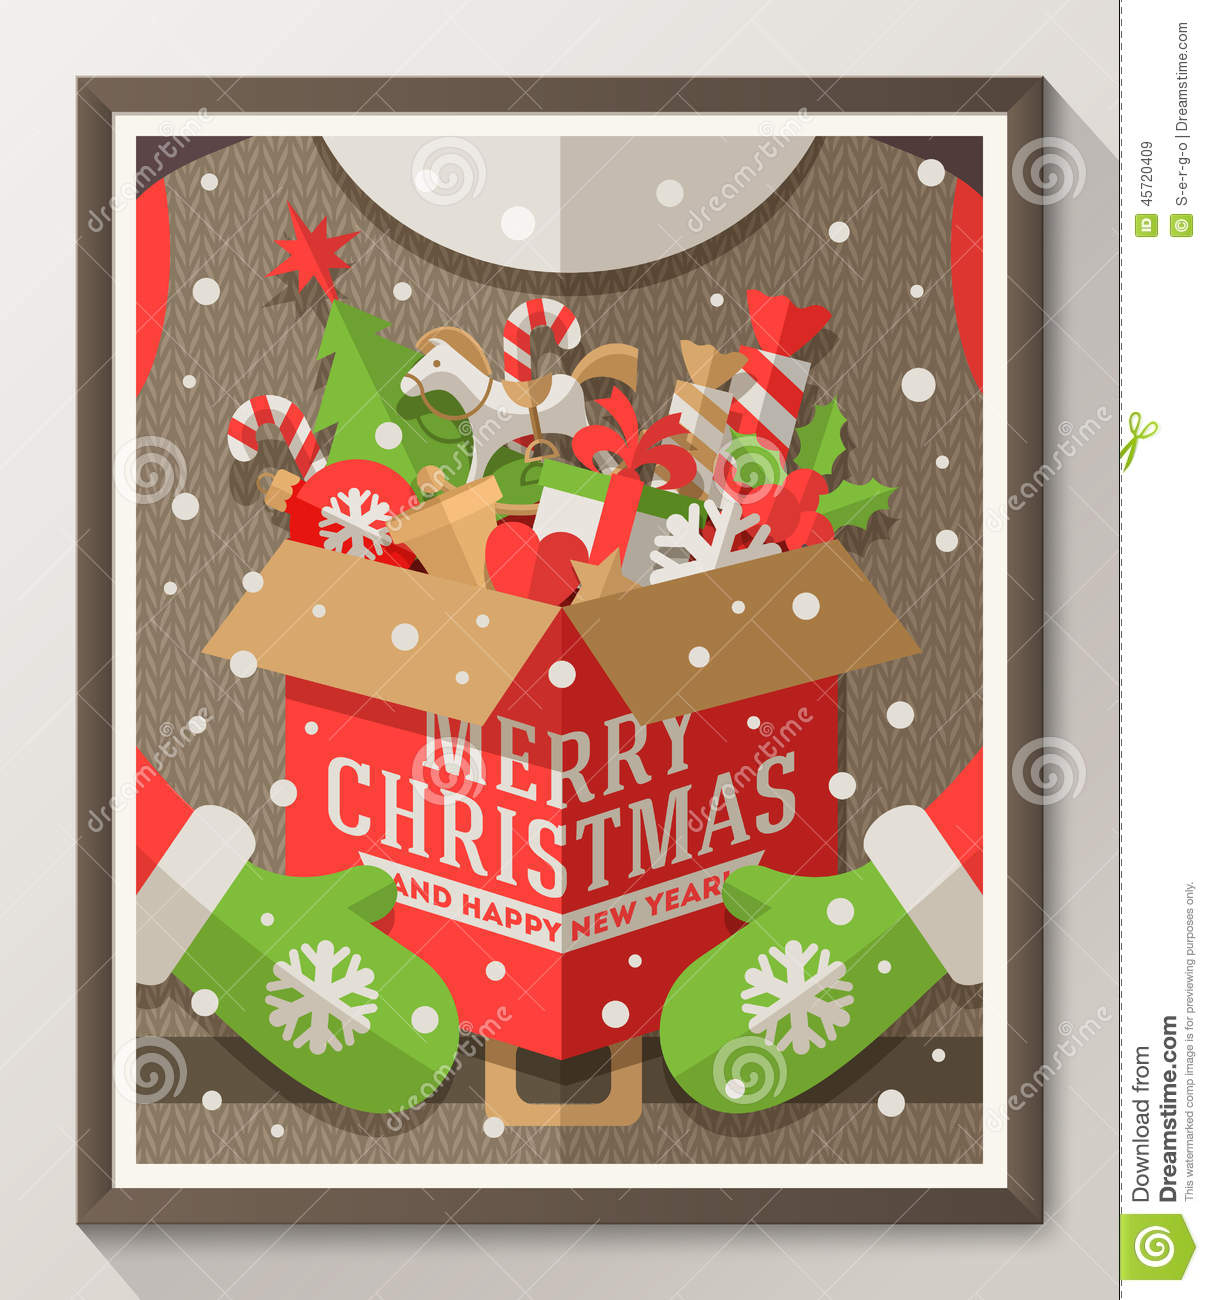 Xmas poster design - Christmas Type Design Poster Stock Vector